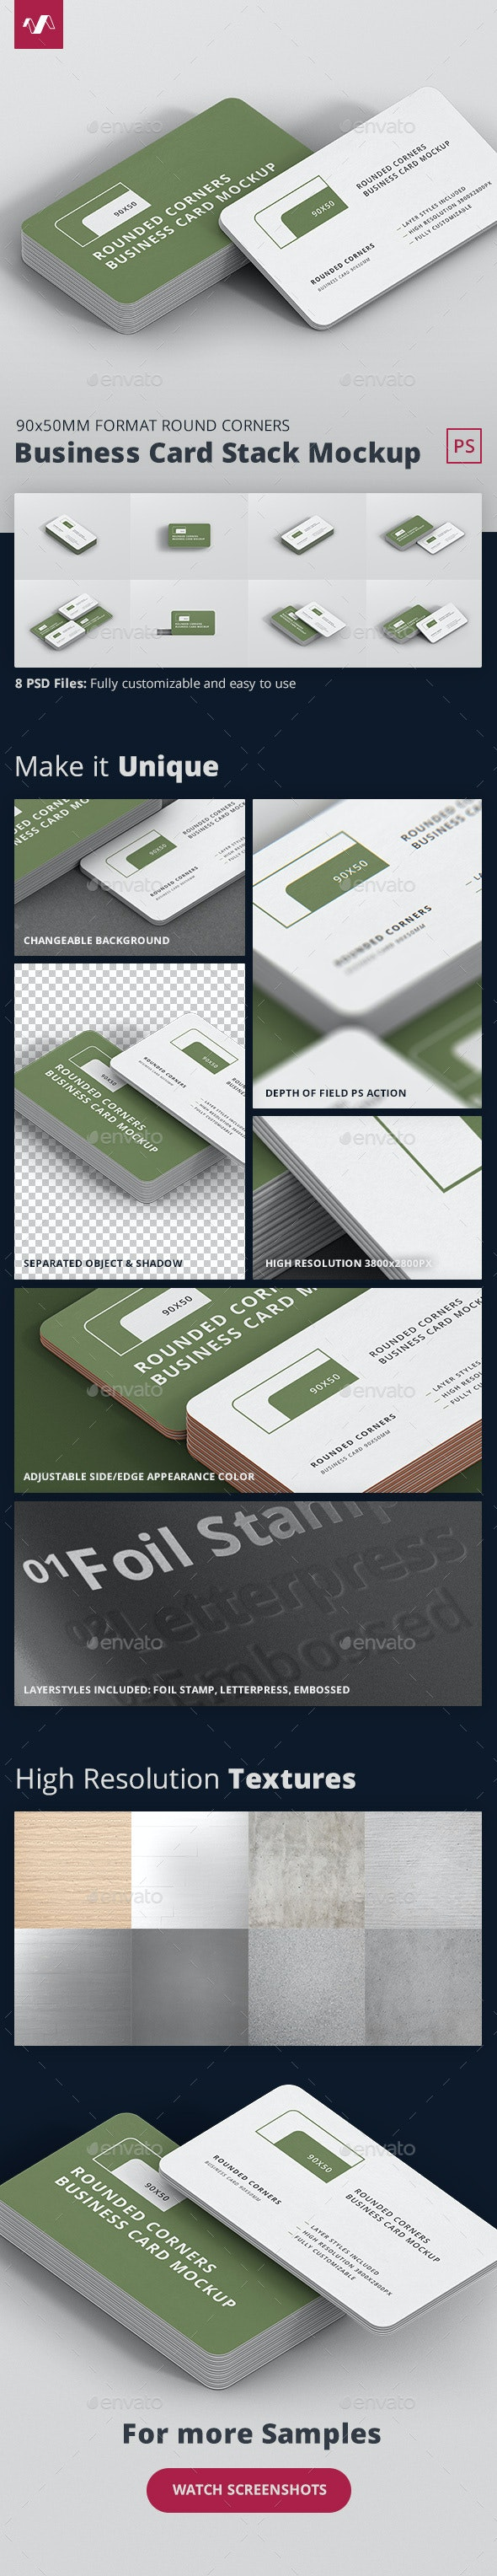 Business Card Mockup Stack 90x50 Round Corners - Business Cards Print